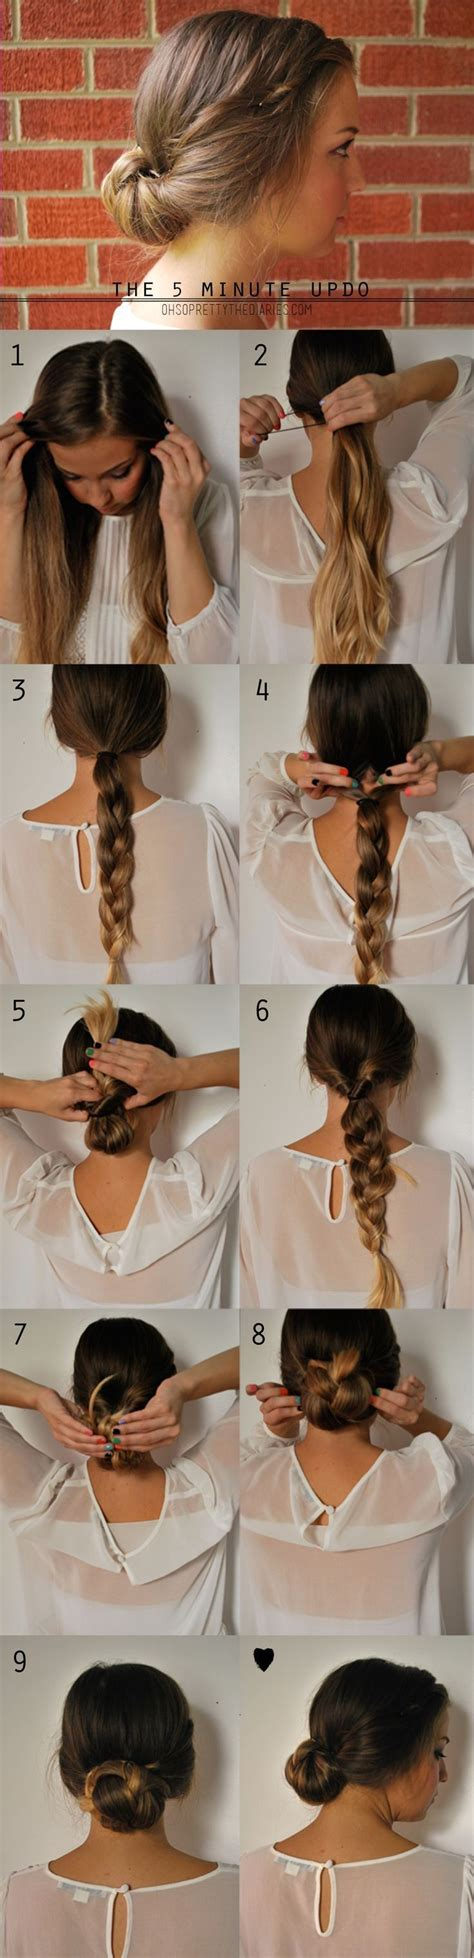 15 easy step by step hairstyles for long hair hair style 15 cute hairstyles step by step hairstyles for long hair